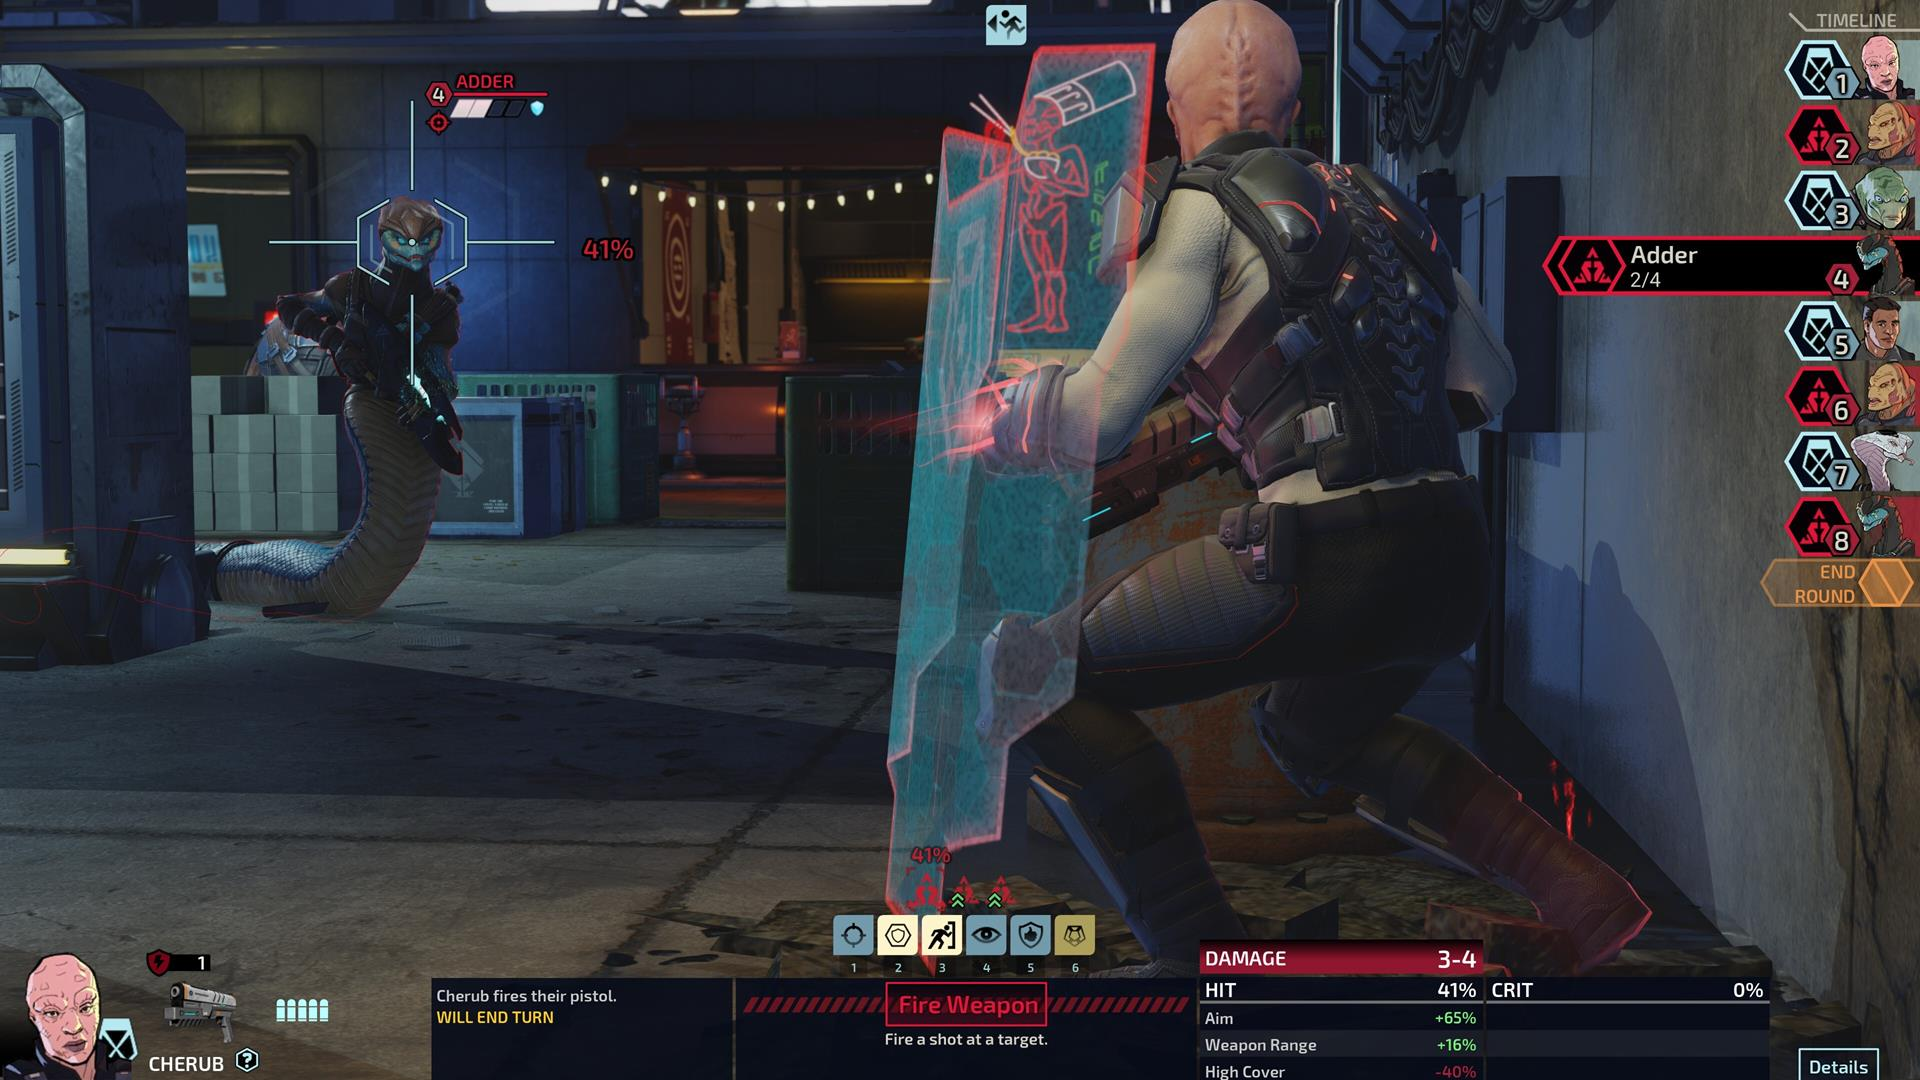 XCOM: Chimera Squad is a new standalone game coming next week - VG247